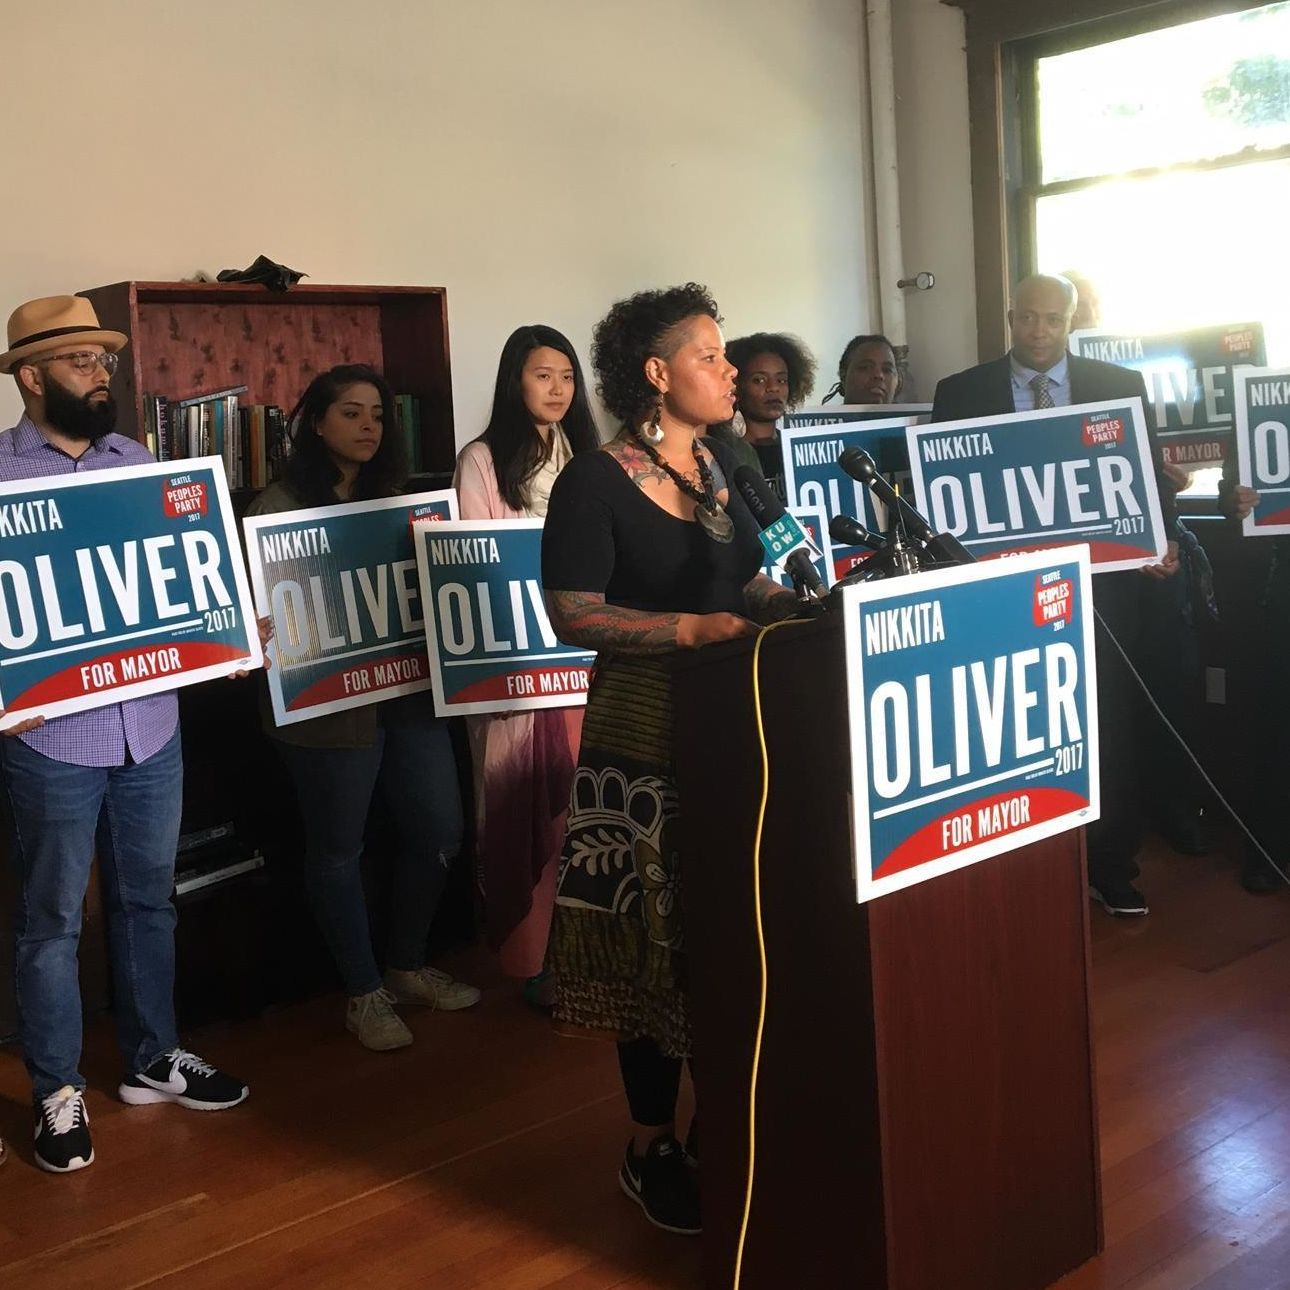 Nikkita oliver concedes washington hall 081517 w15w2k